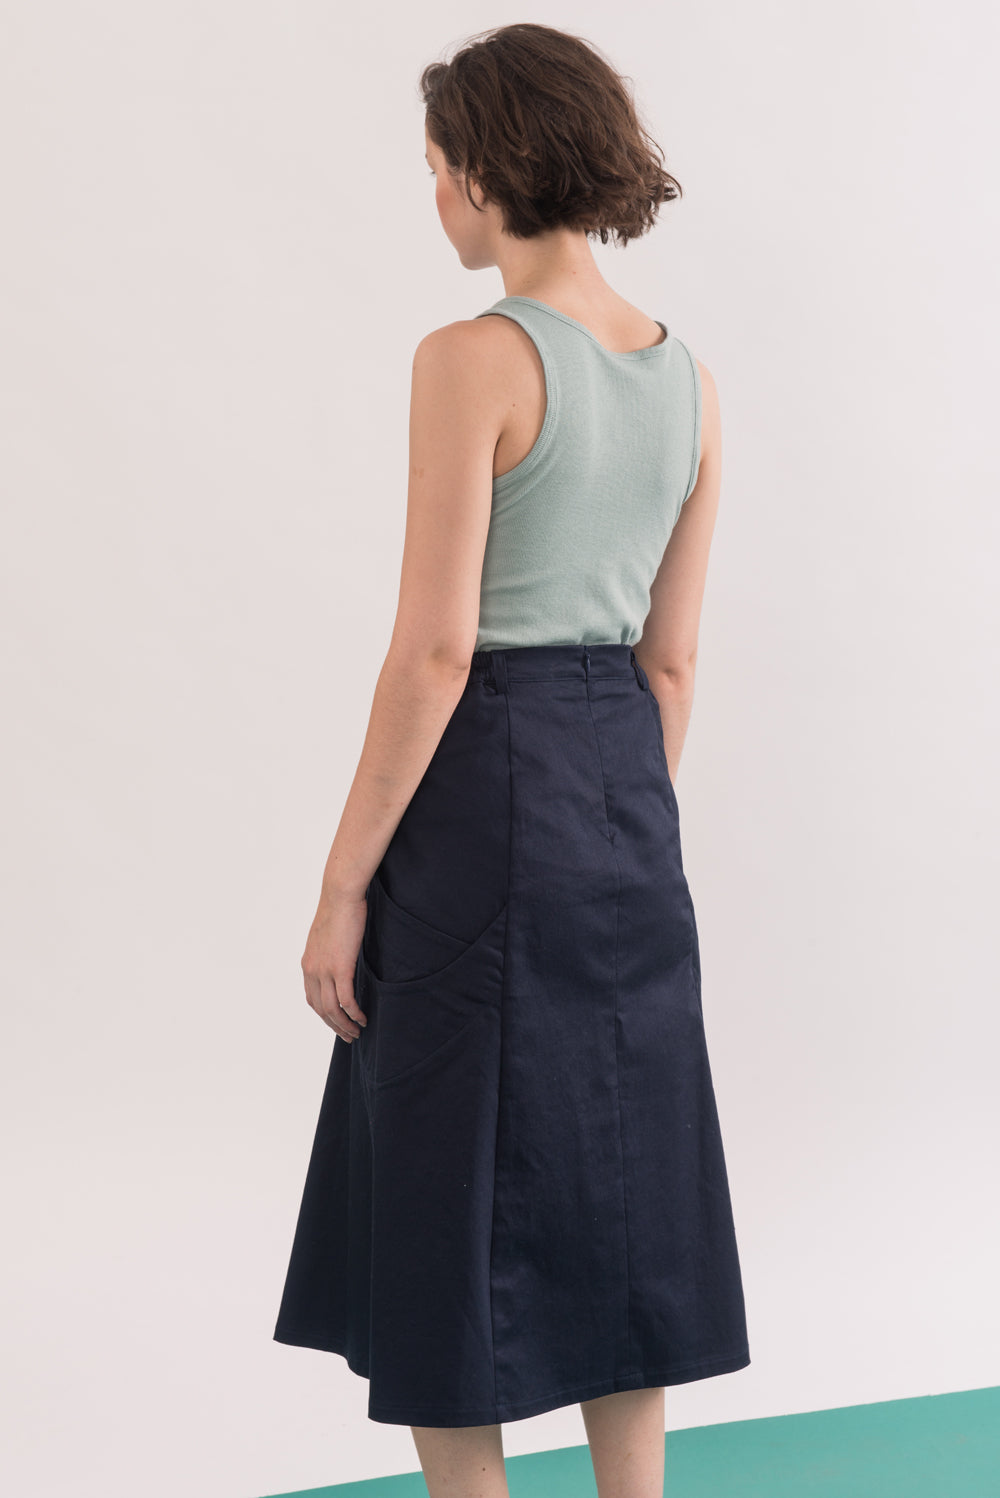 Abramovic Skirt by Jennifer Glasgow, Navy, A-line skirt, back view, midi length, origami pockets, organic cotton twill, eco fabric, OEKO-TEX certified Standard 100, sizes XS to XL, made in Montreal Canada